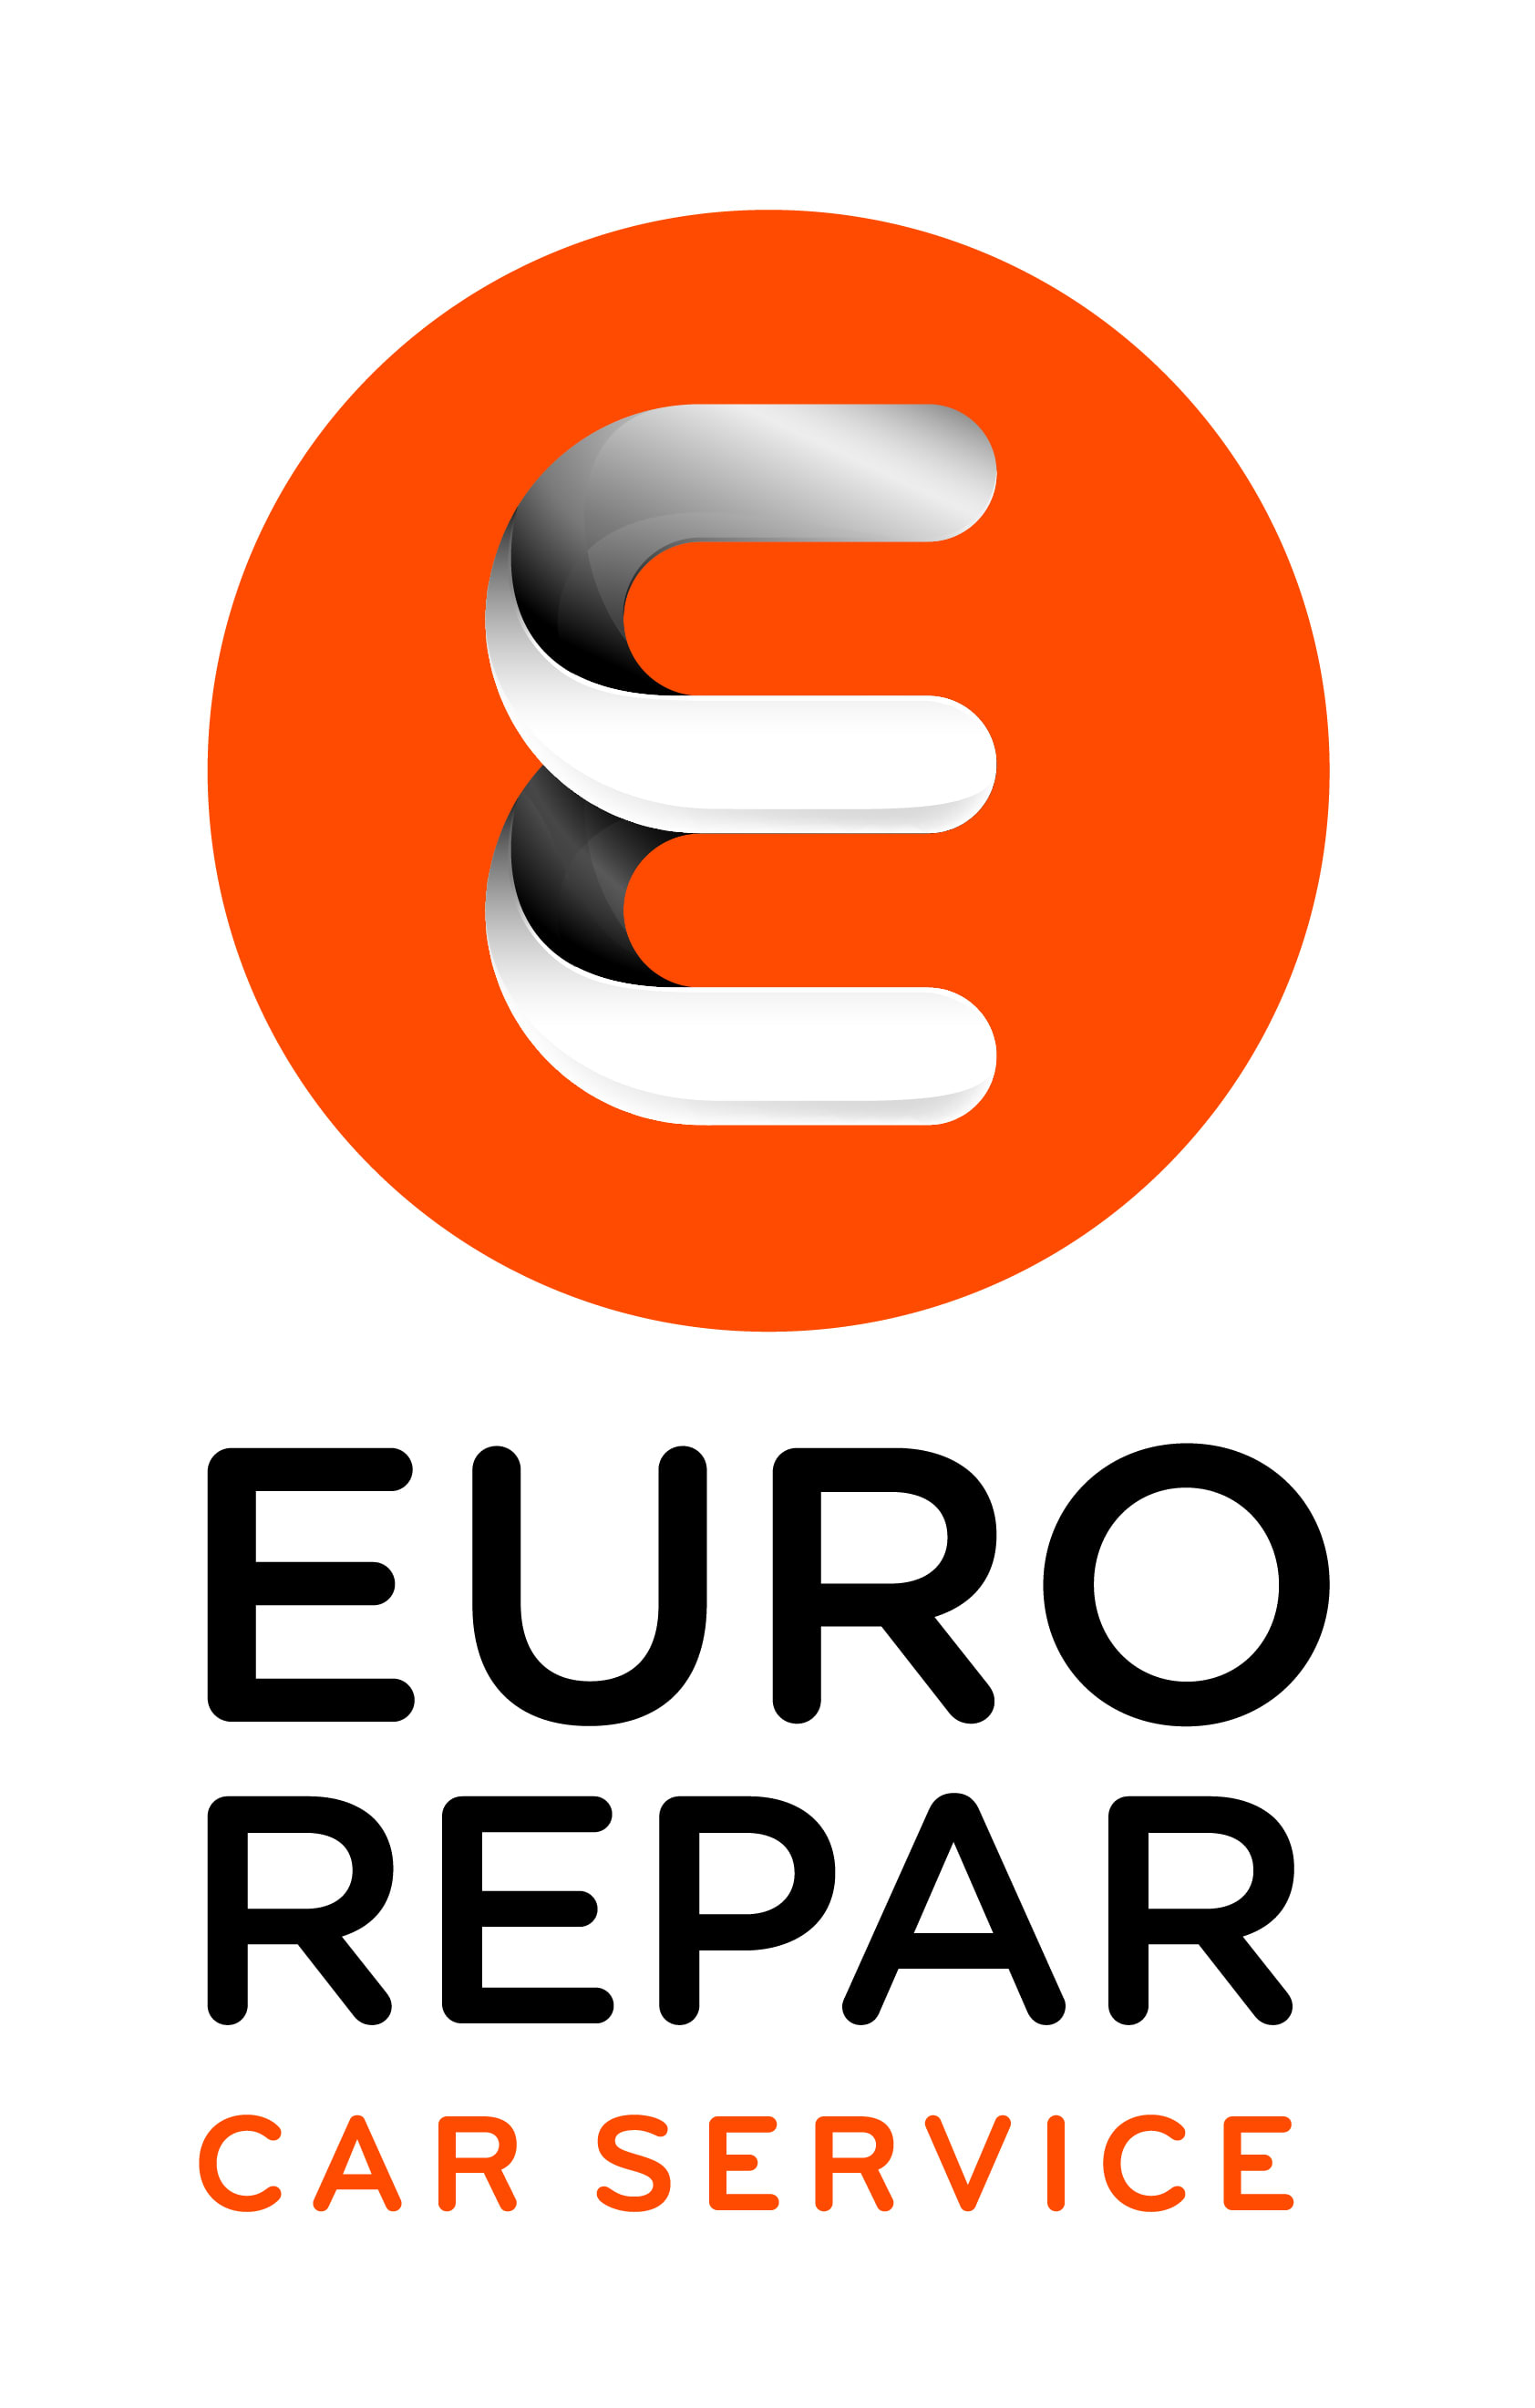 Euro Repar - Garage Descamps Christophe logo